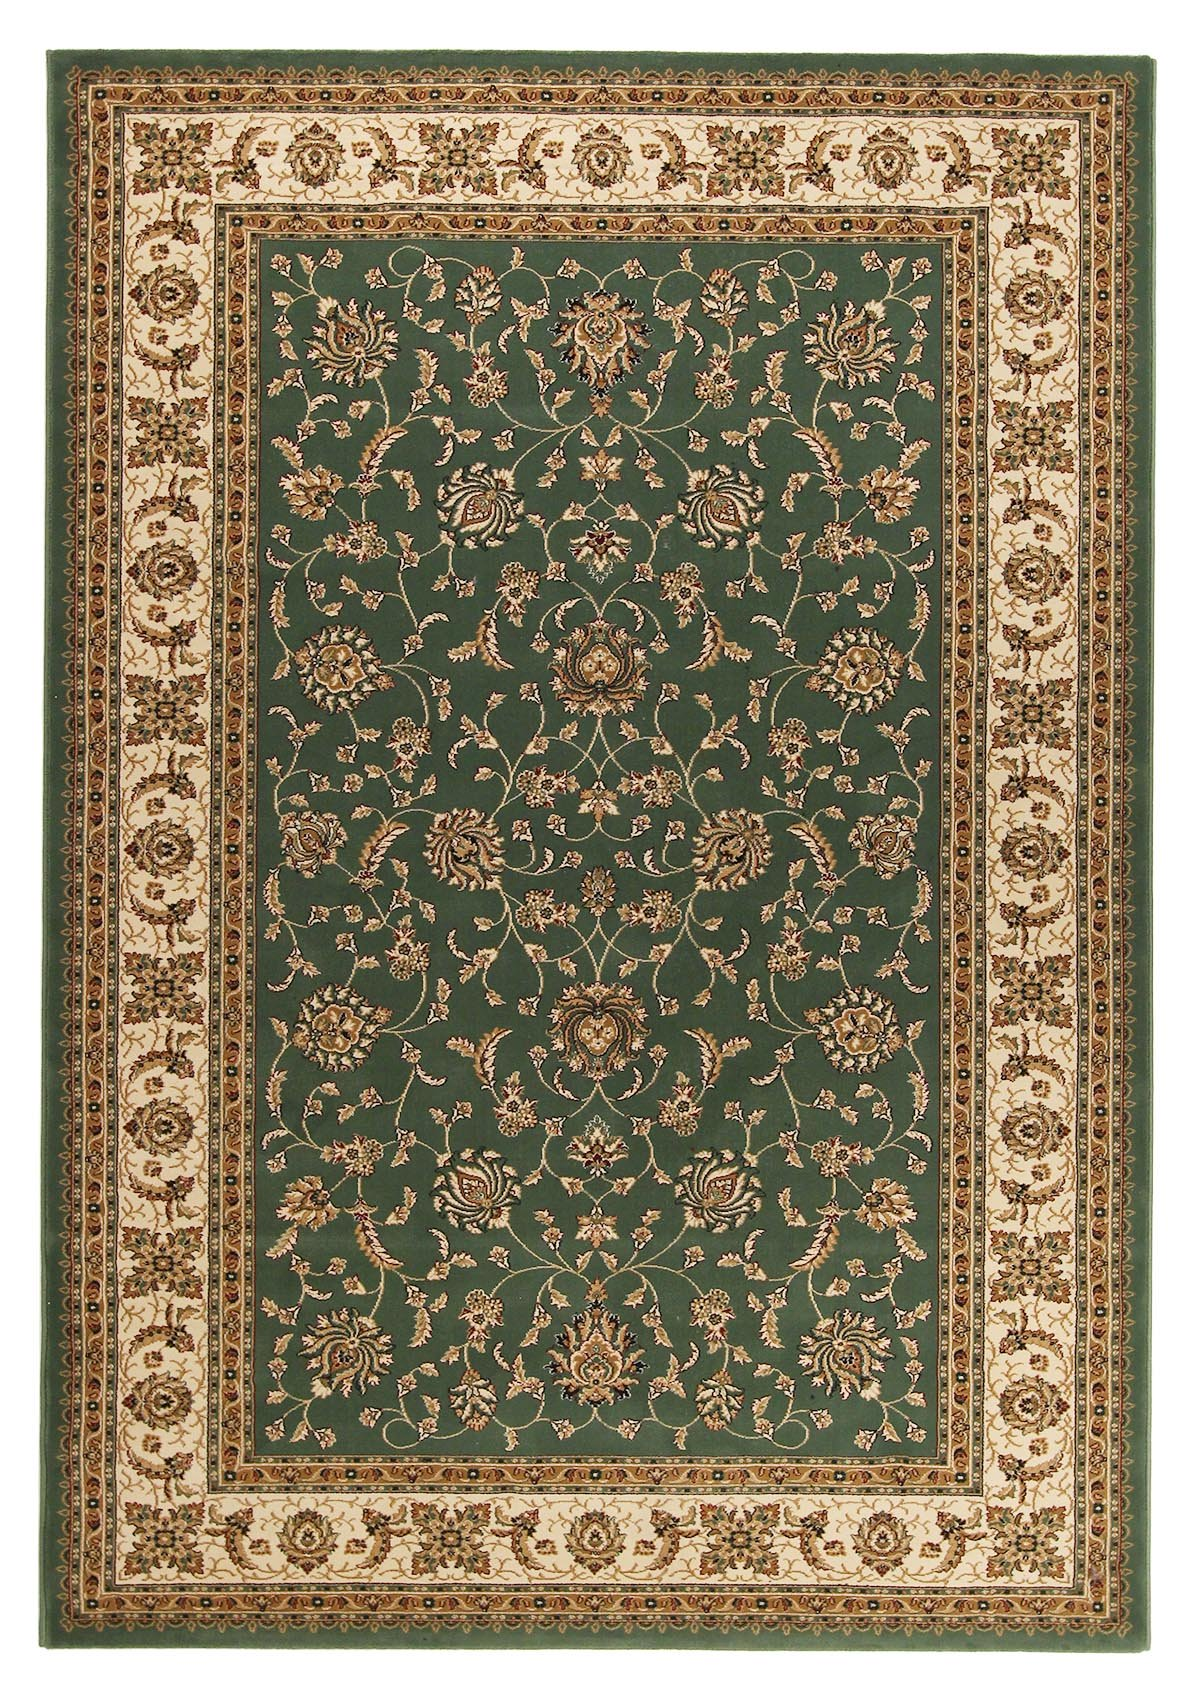 Green traditional Persian style rug